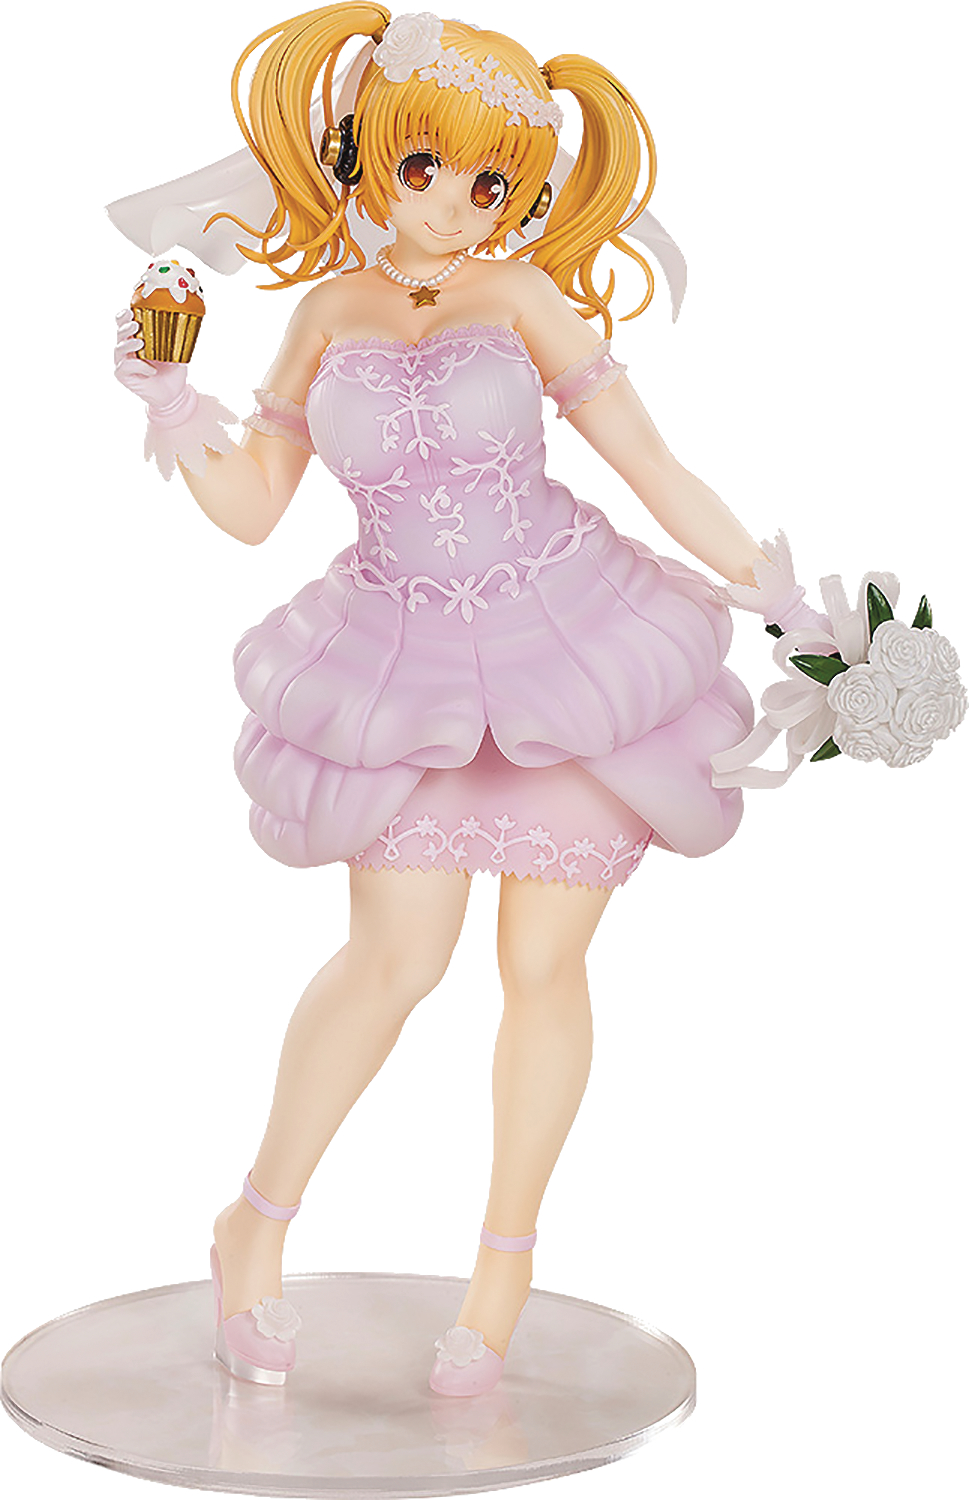 SUPER POCHACO 1/5 PVC FIG WEDDING VER